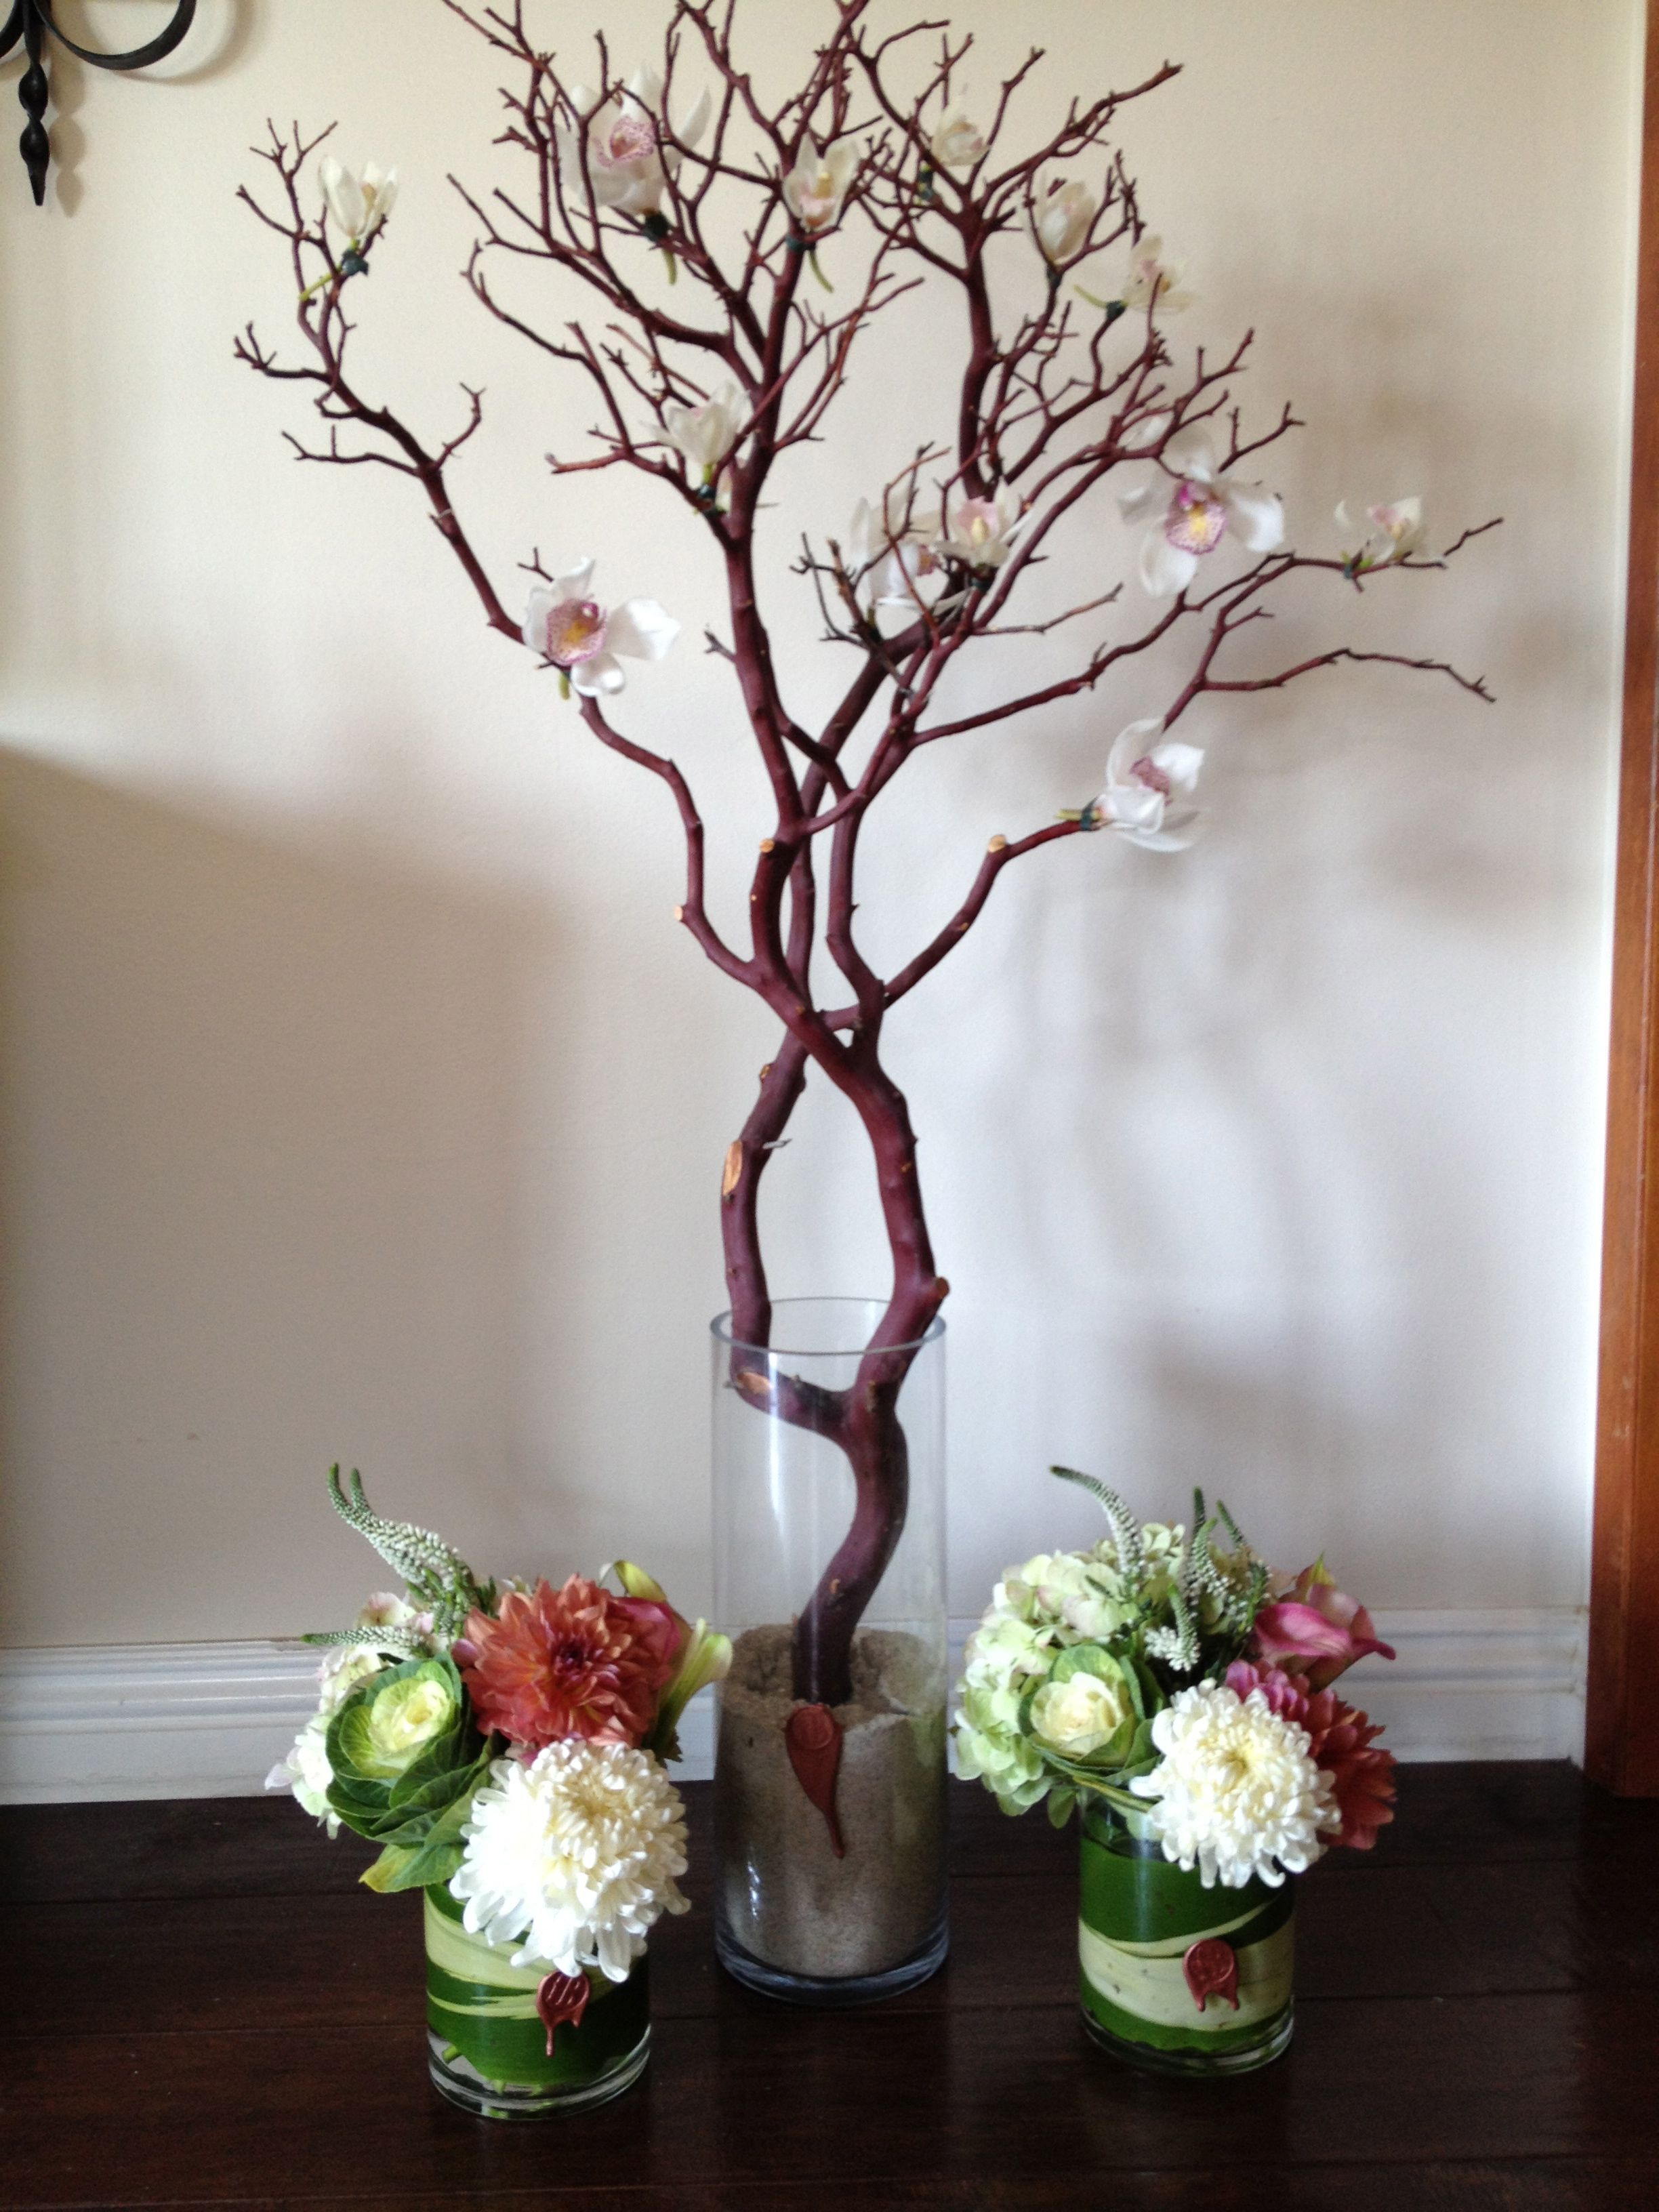 Manzanita Tree With Orchids And Centerpiece Arrangements Wedding Centerpieces Diy Wedding Centerpieces Centerpieces